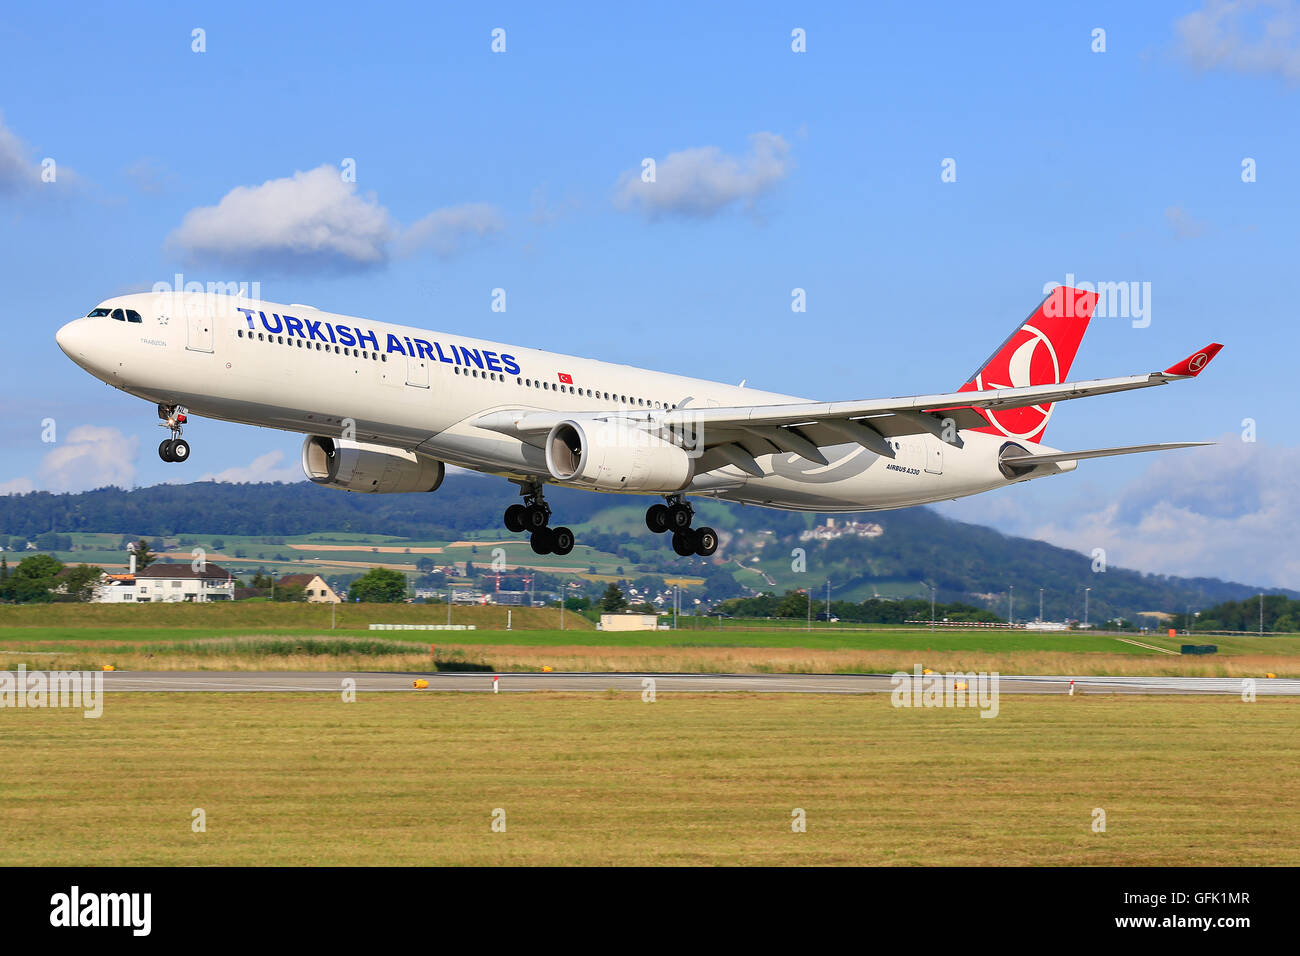 urich/Switzerland July10, 2016: Turkish Airliners Airbus A330 landing at Zurich Airport. - Stock Image